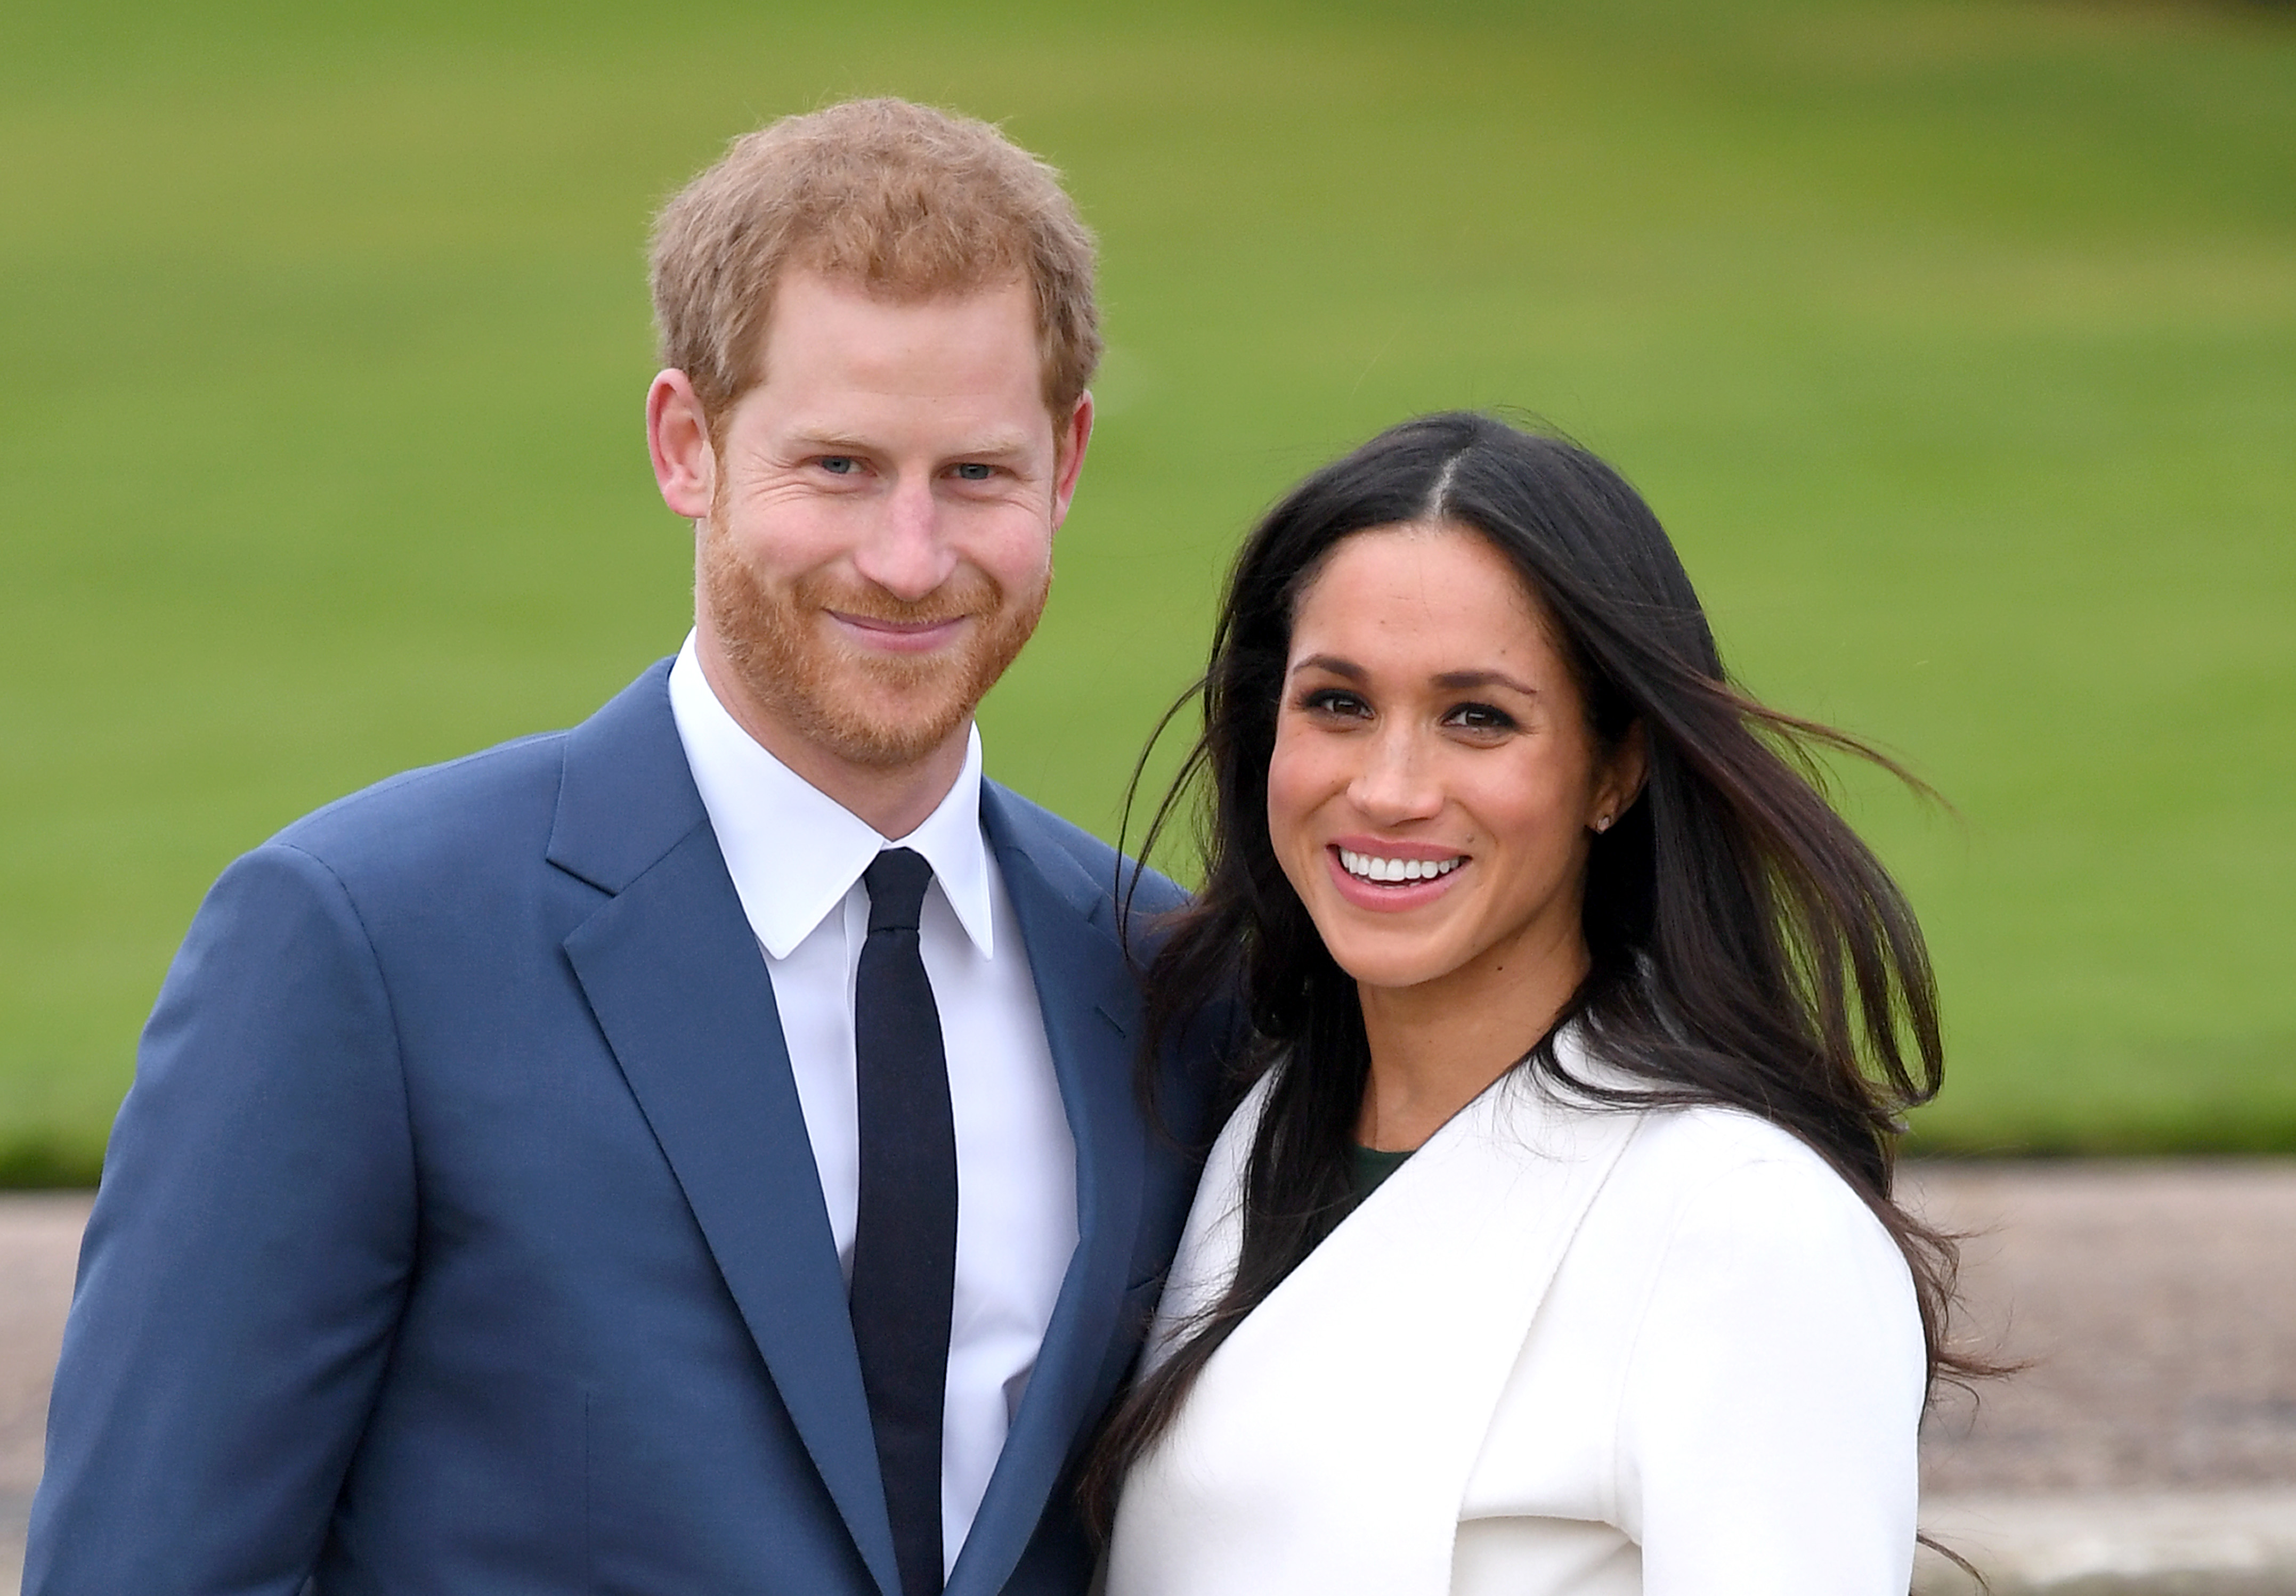 Prince Harry and Meghan Markle will be losing their royal titles